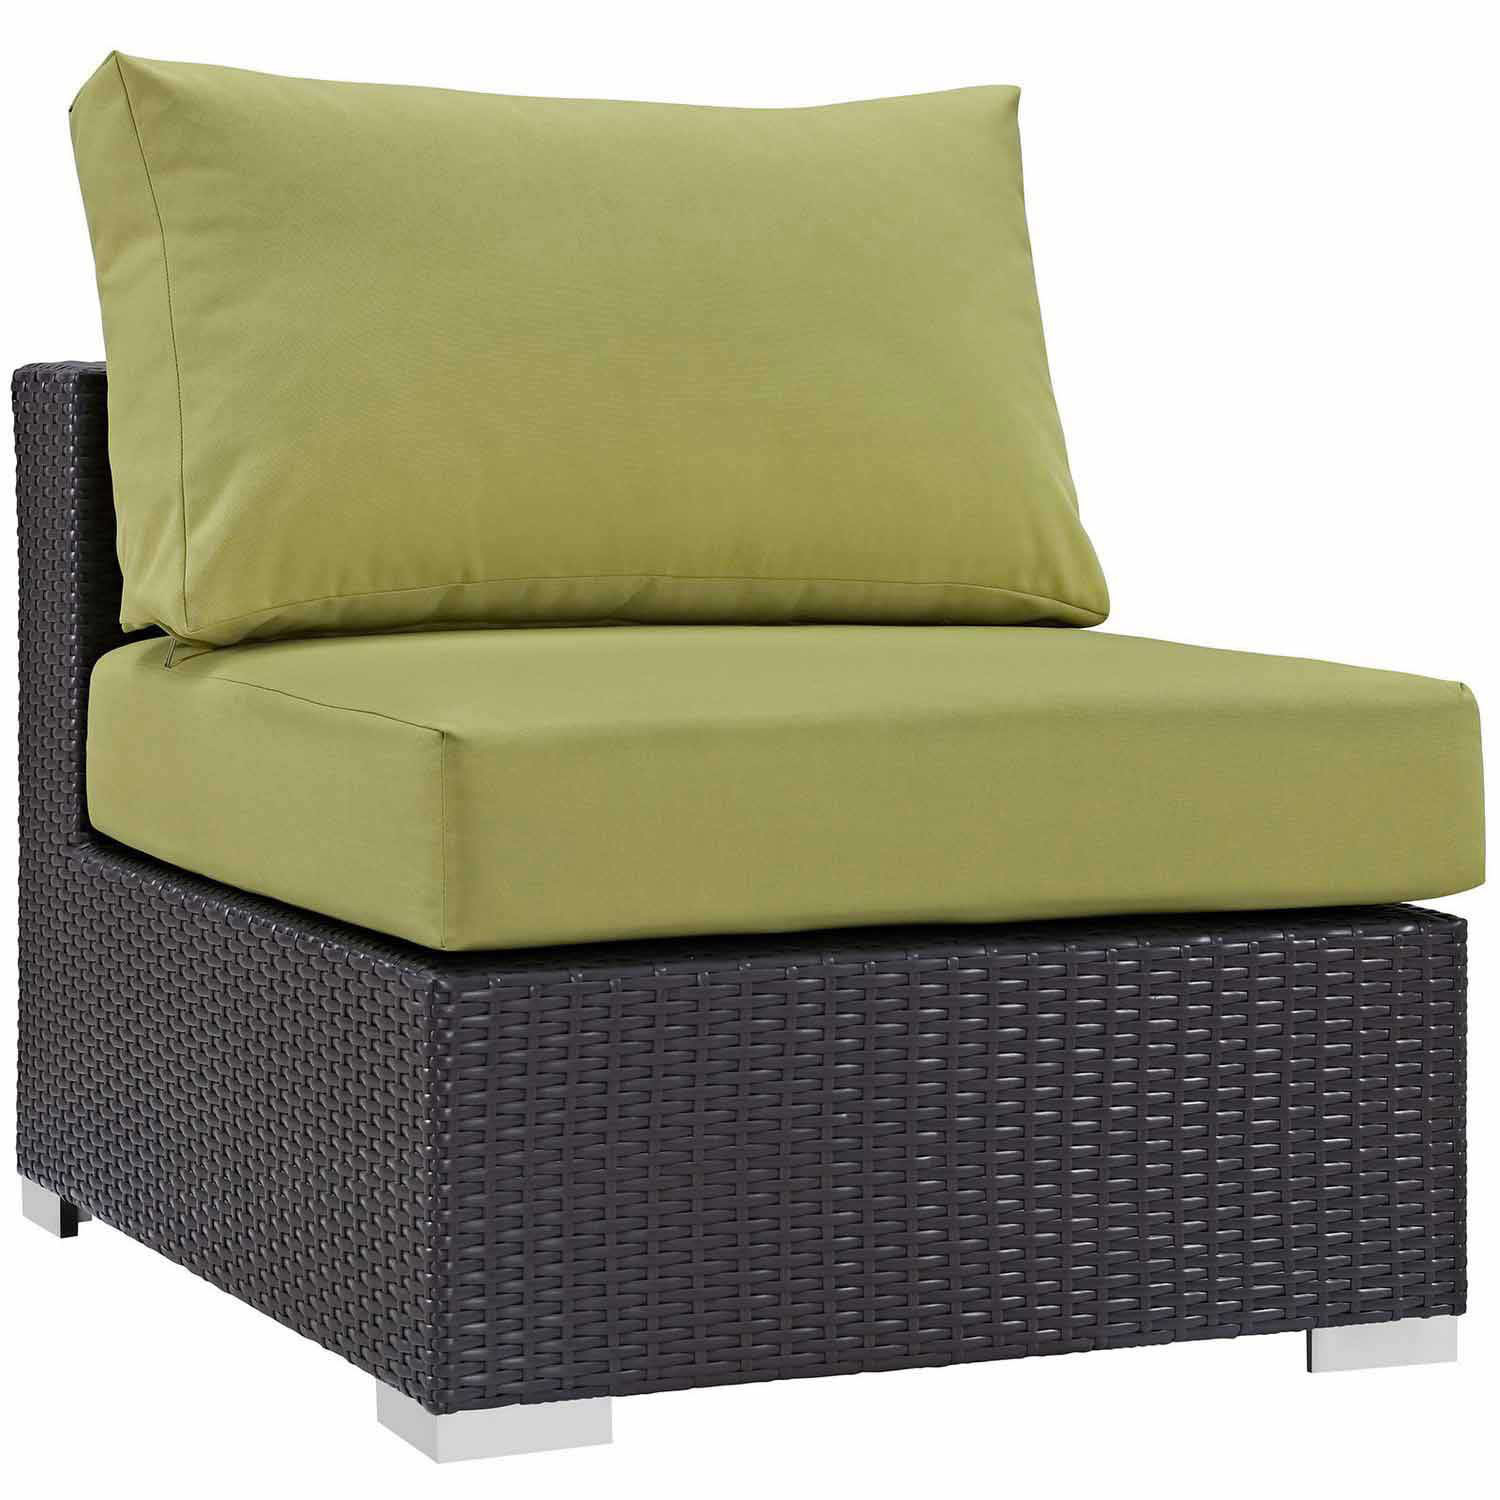 Modway Convene Outdoor Patio Armless - Espresso Peridot